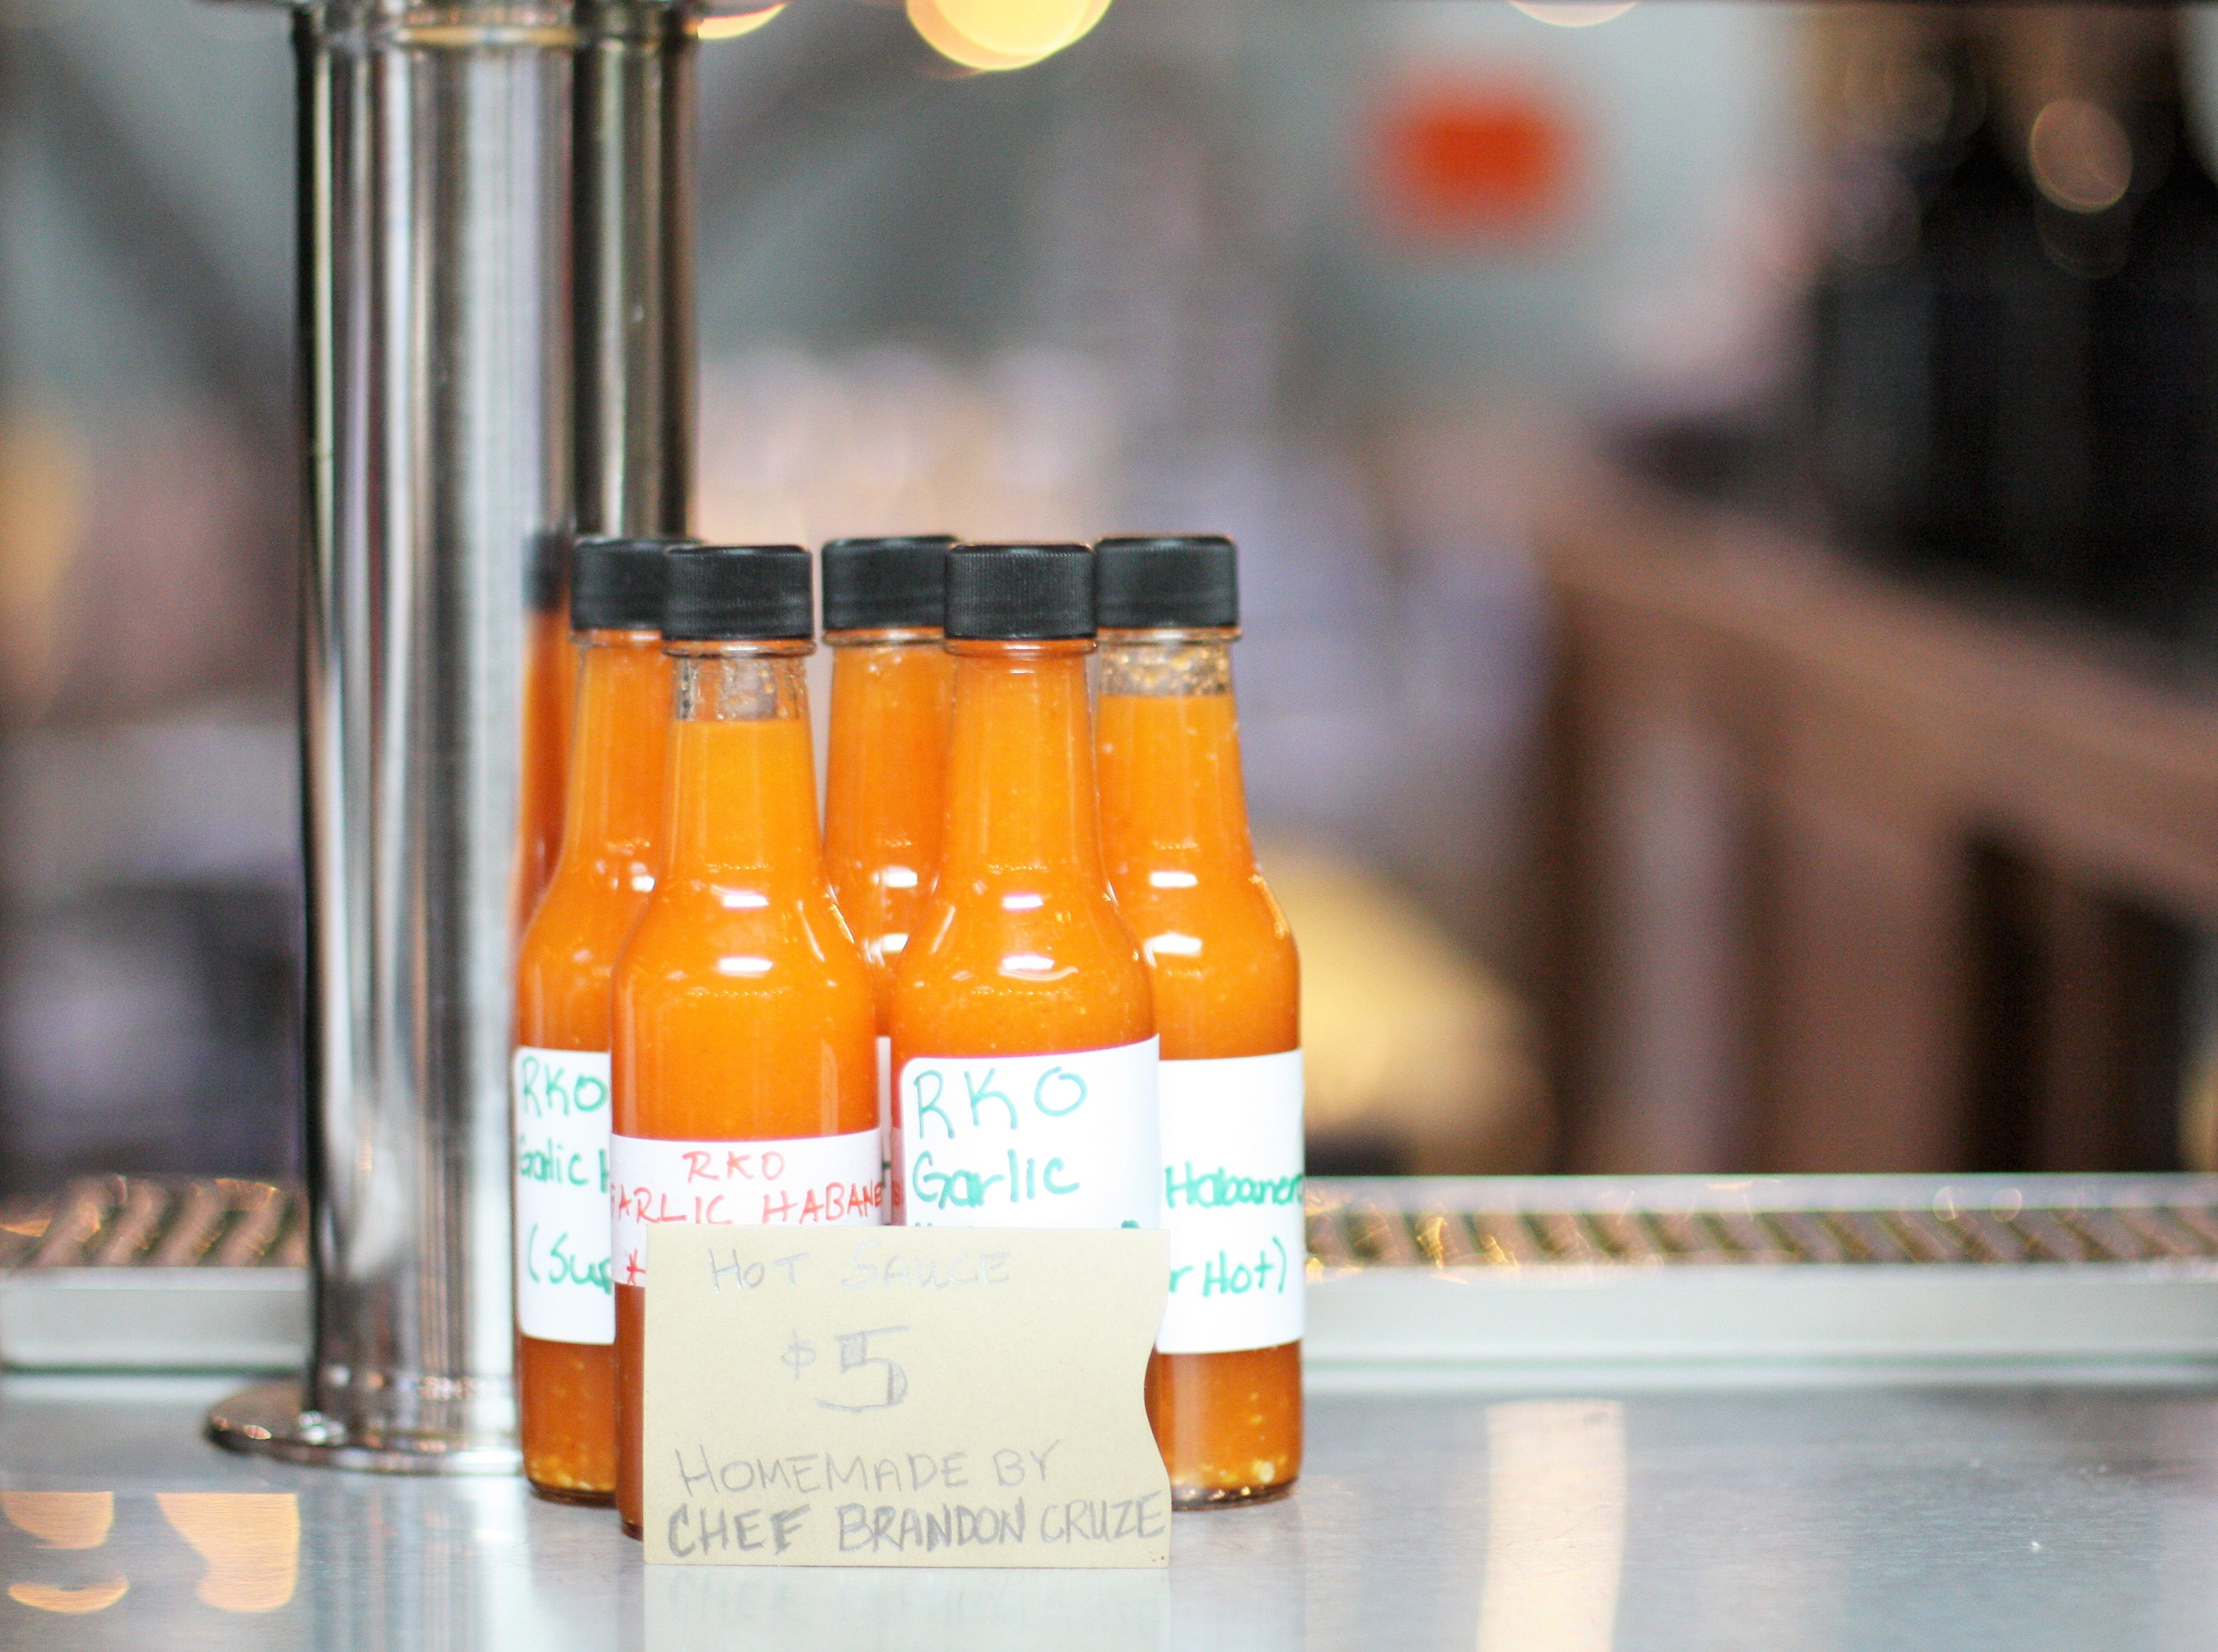 Chef Brandon Cruze's homemade sauces can be purchased to take home.